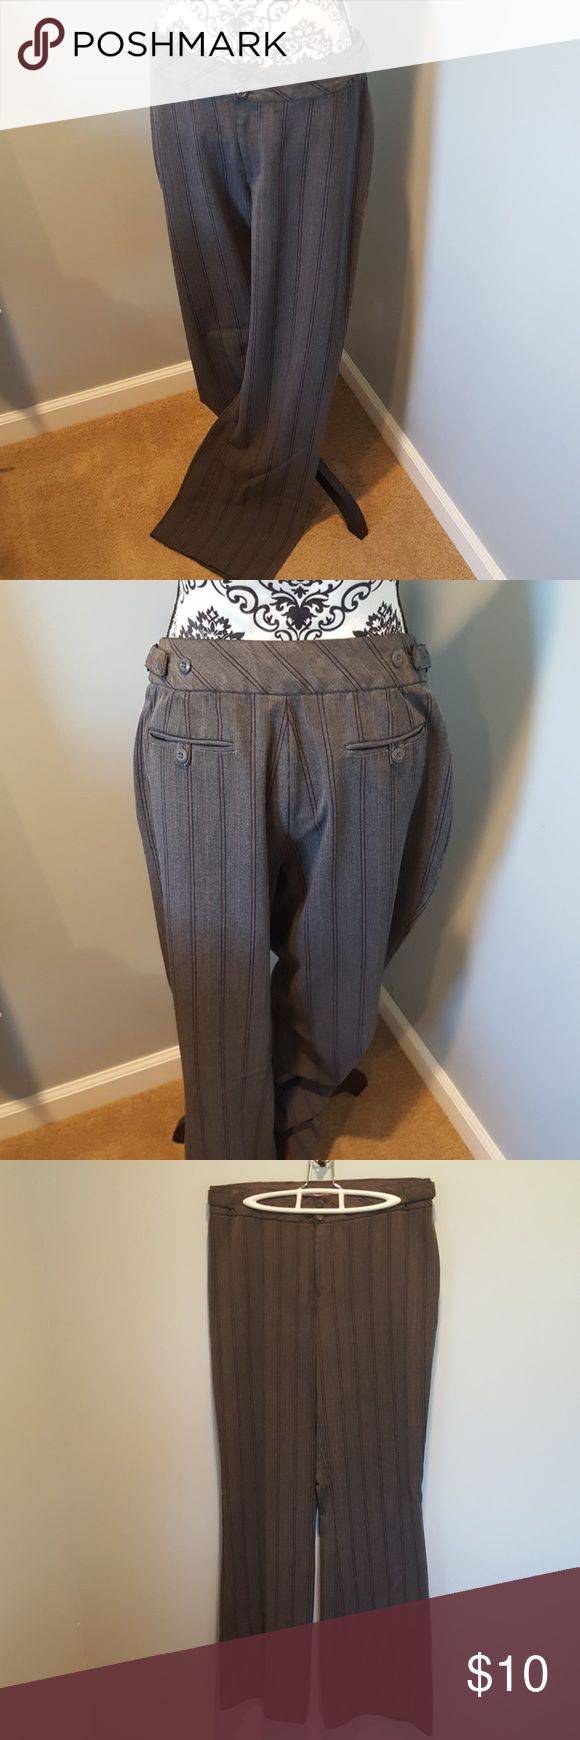 Women's dress pants Dark grey dress pants with black and pink pin stripes. Size 11/12 Maurices Pants Trousers